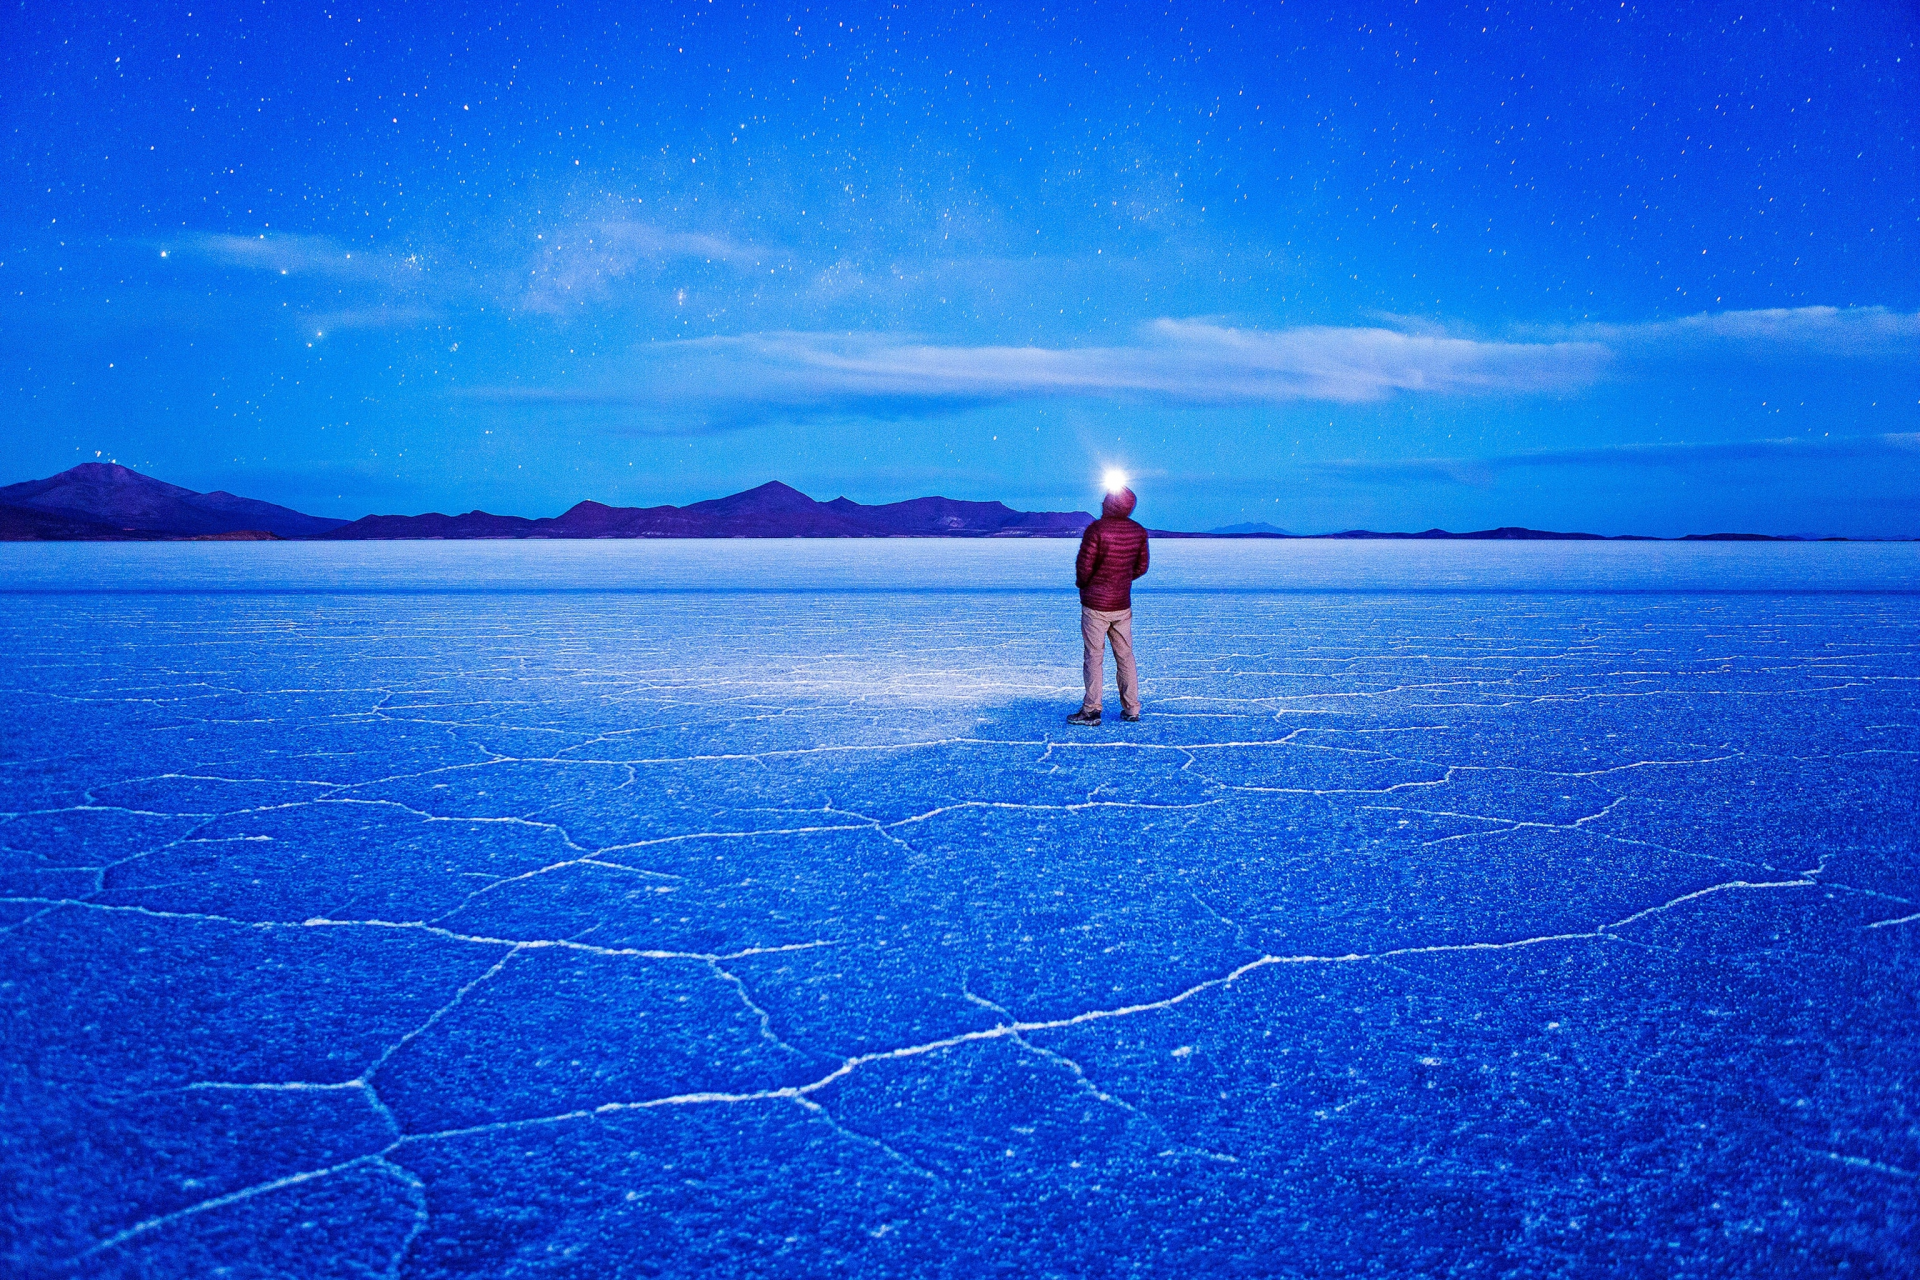 The star-studded night sky casts the salt flats shades of blue. During the dry season the ground hardens and polygonal patterns of salt rise from the ground. PHOTOGRAPH BY ERIC HANSON, GETTY IMAGES